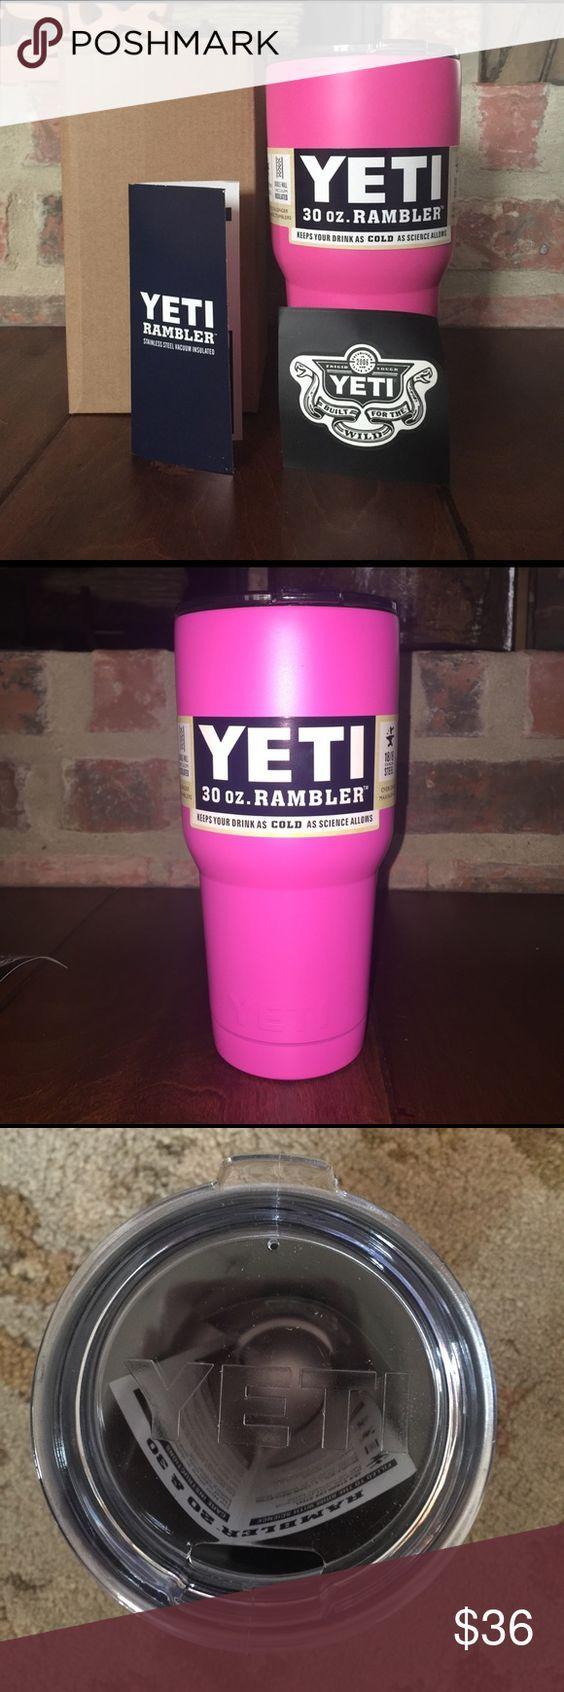 YETI Rambler 30 oz. Tumbler YETI Rambler 30 oz. Tumbler •Pink Powder-Coated Stainless Steel• Authentic• Box included• Price Firm• YETI Other